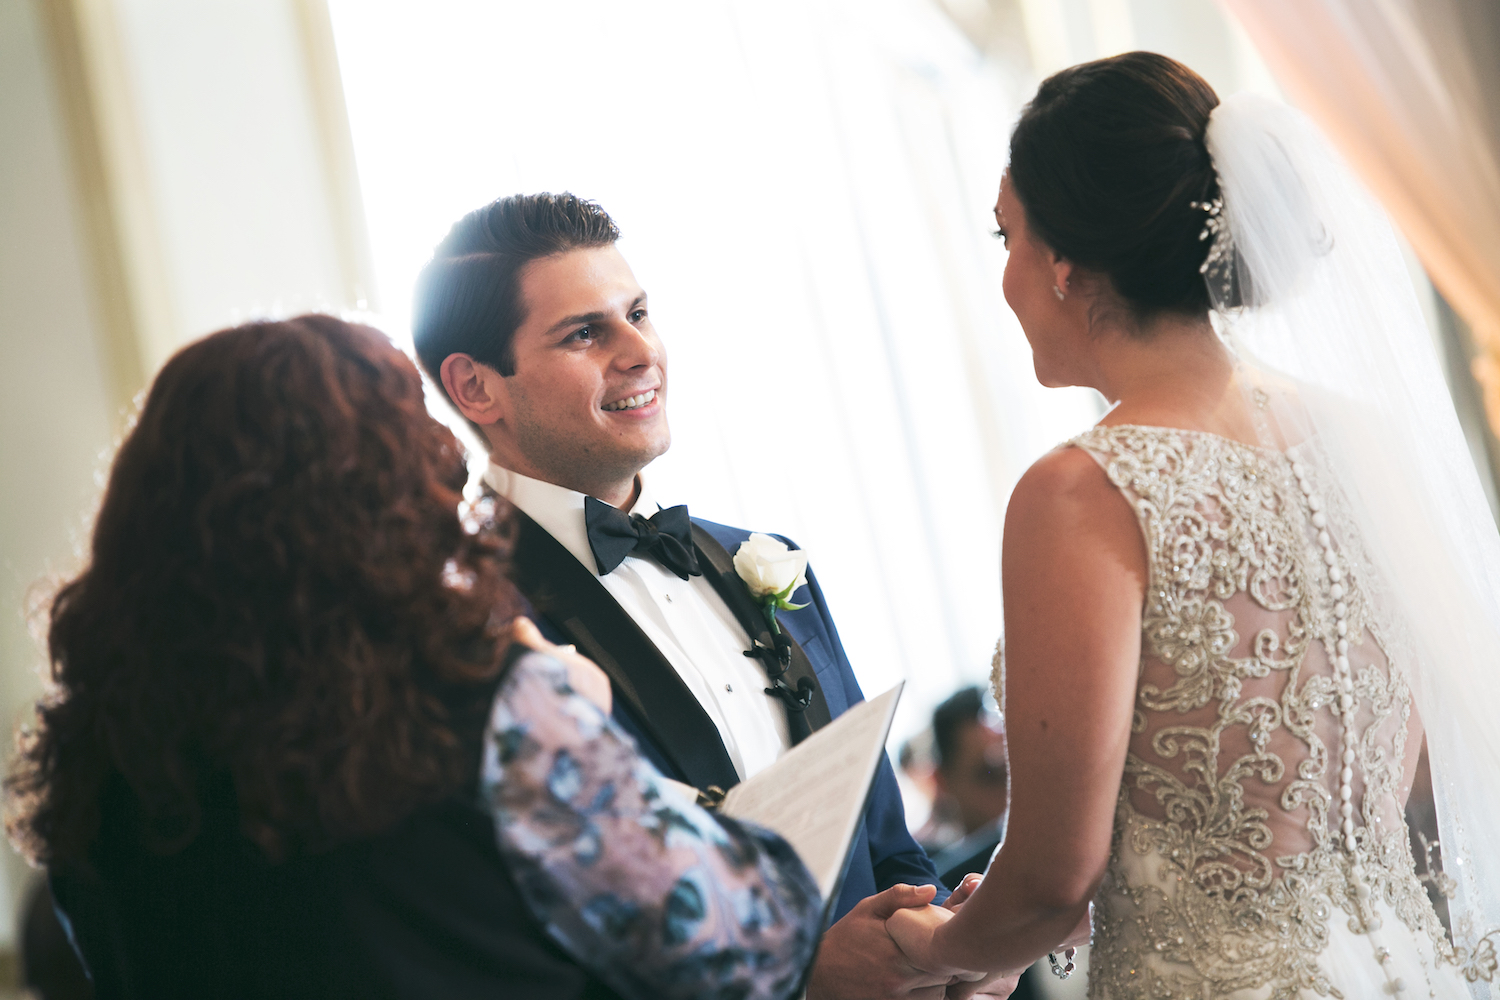 jesse&clarissa-holding-hands-at-altar-wedding-photography-nj